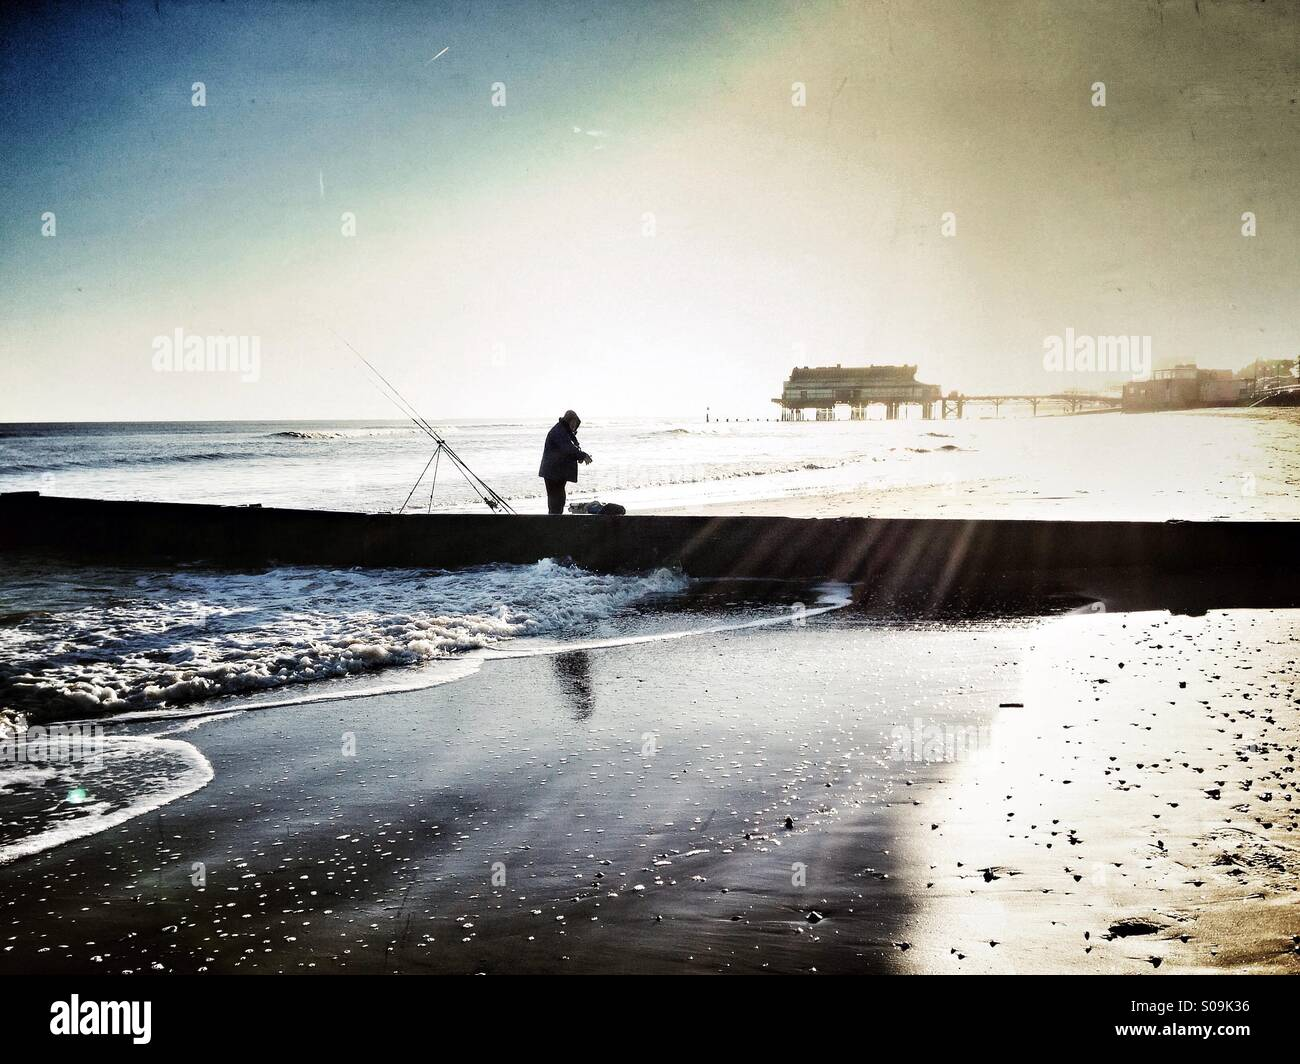 Sea fishing in winter surf on the shoreline of Cleethorpes beach with pier in background. Silhouette of fisherman - Stock Image